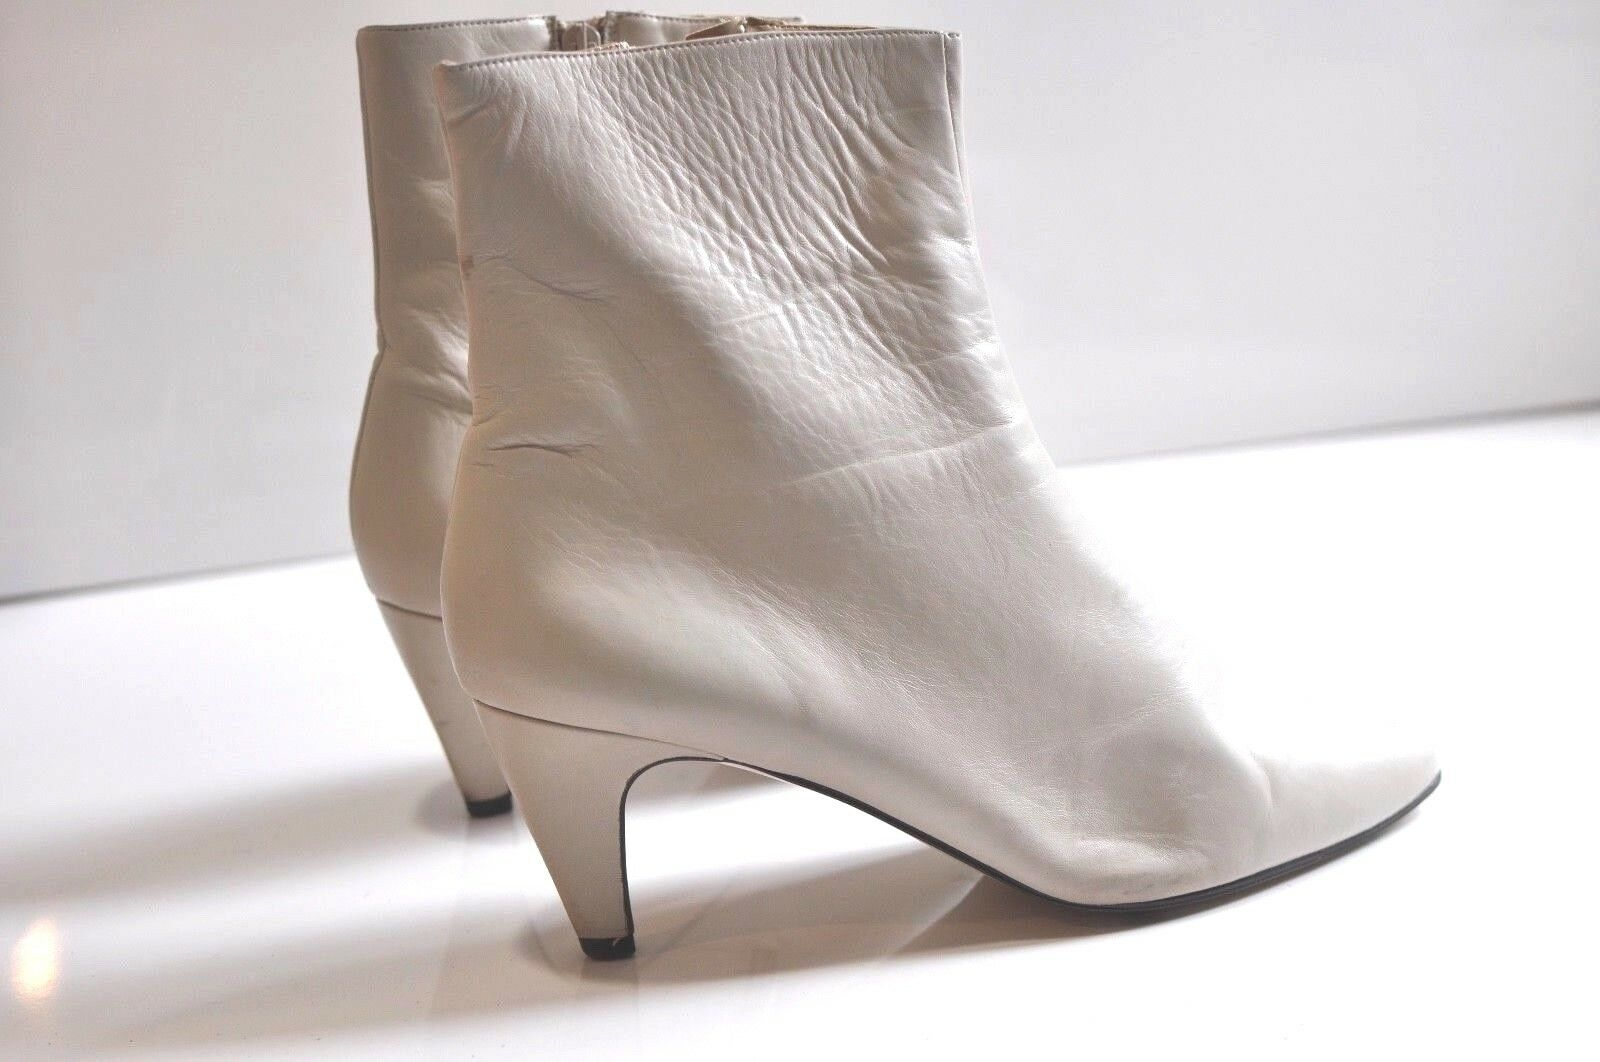 Proxy Womens leather ankle boots heels size 11M